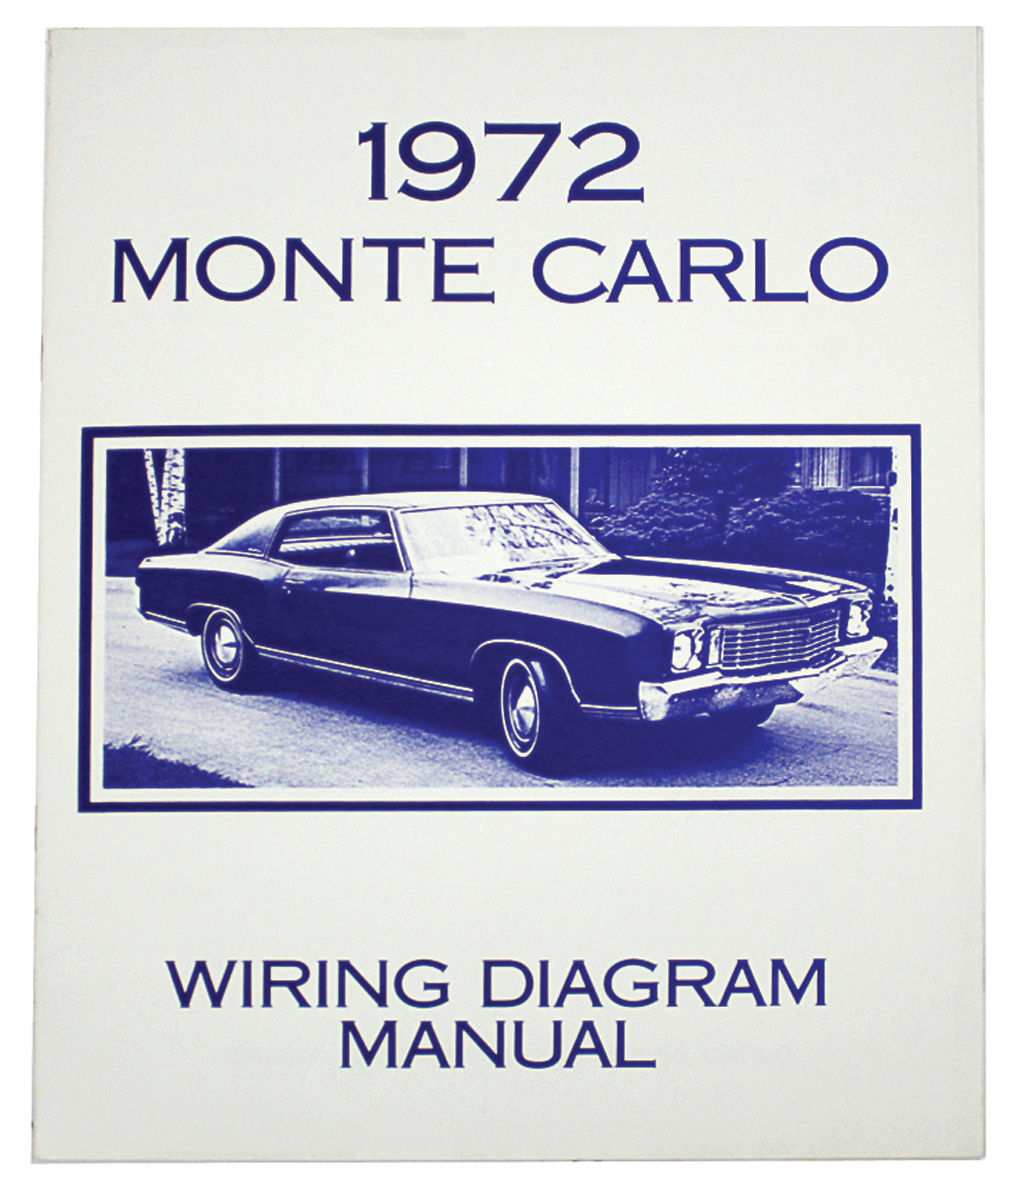 medium resolution of monte carlo wiring diagram manuals opgi com rh opgi com 1972 chevy blazer wiring diagram 1996 chevy monte carlo